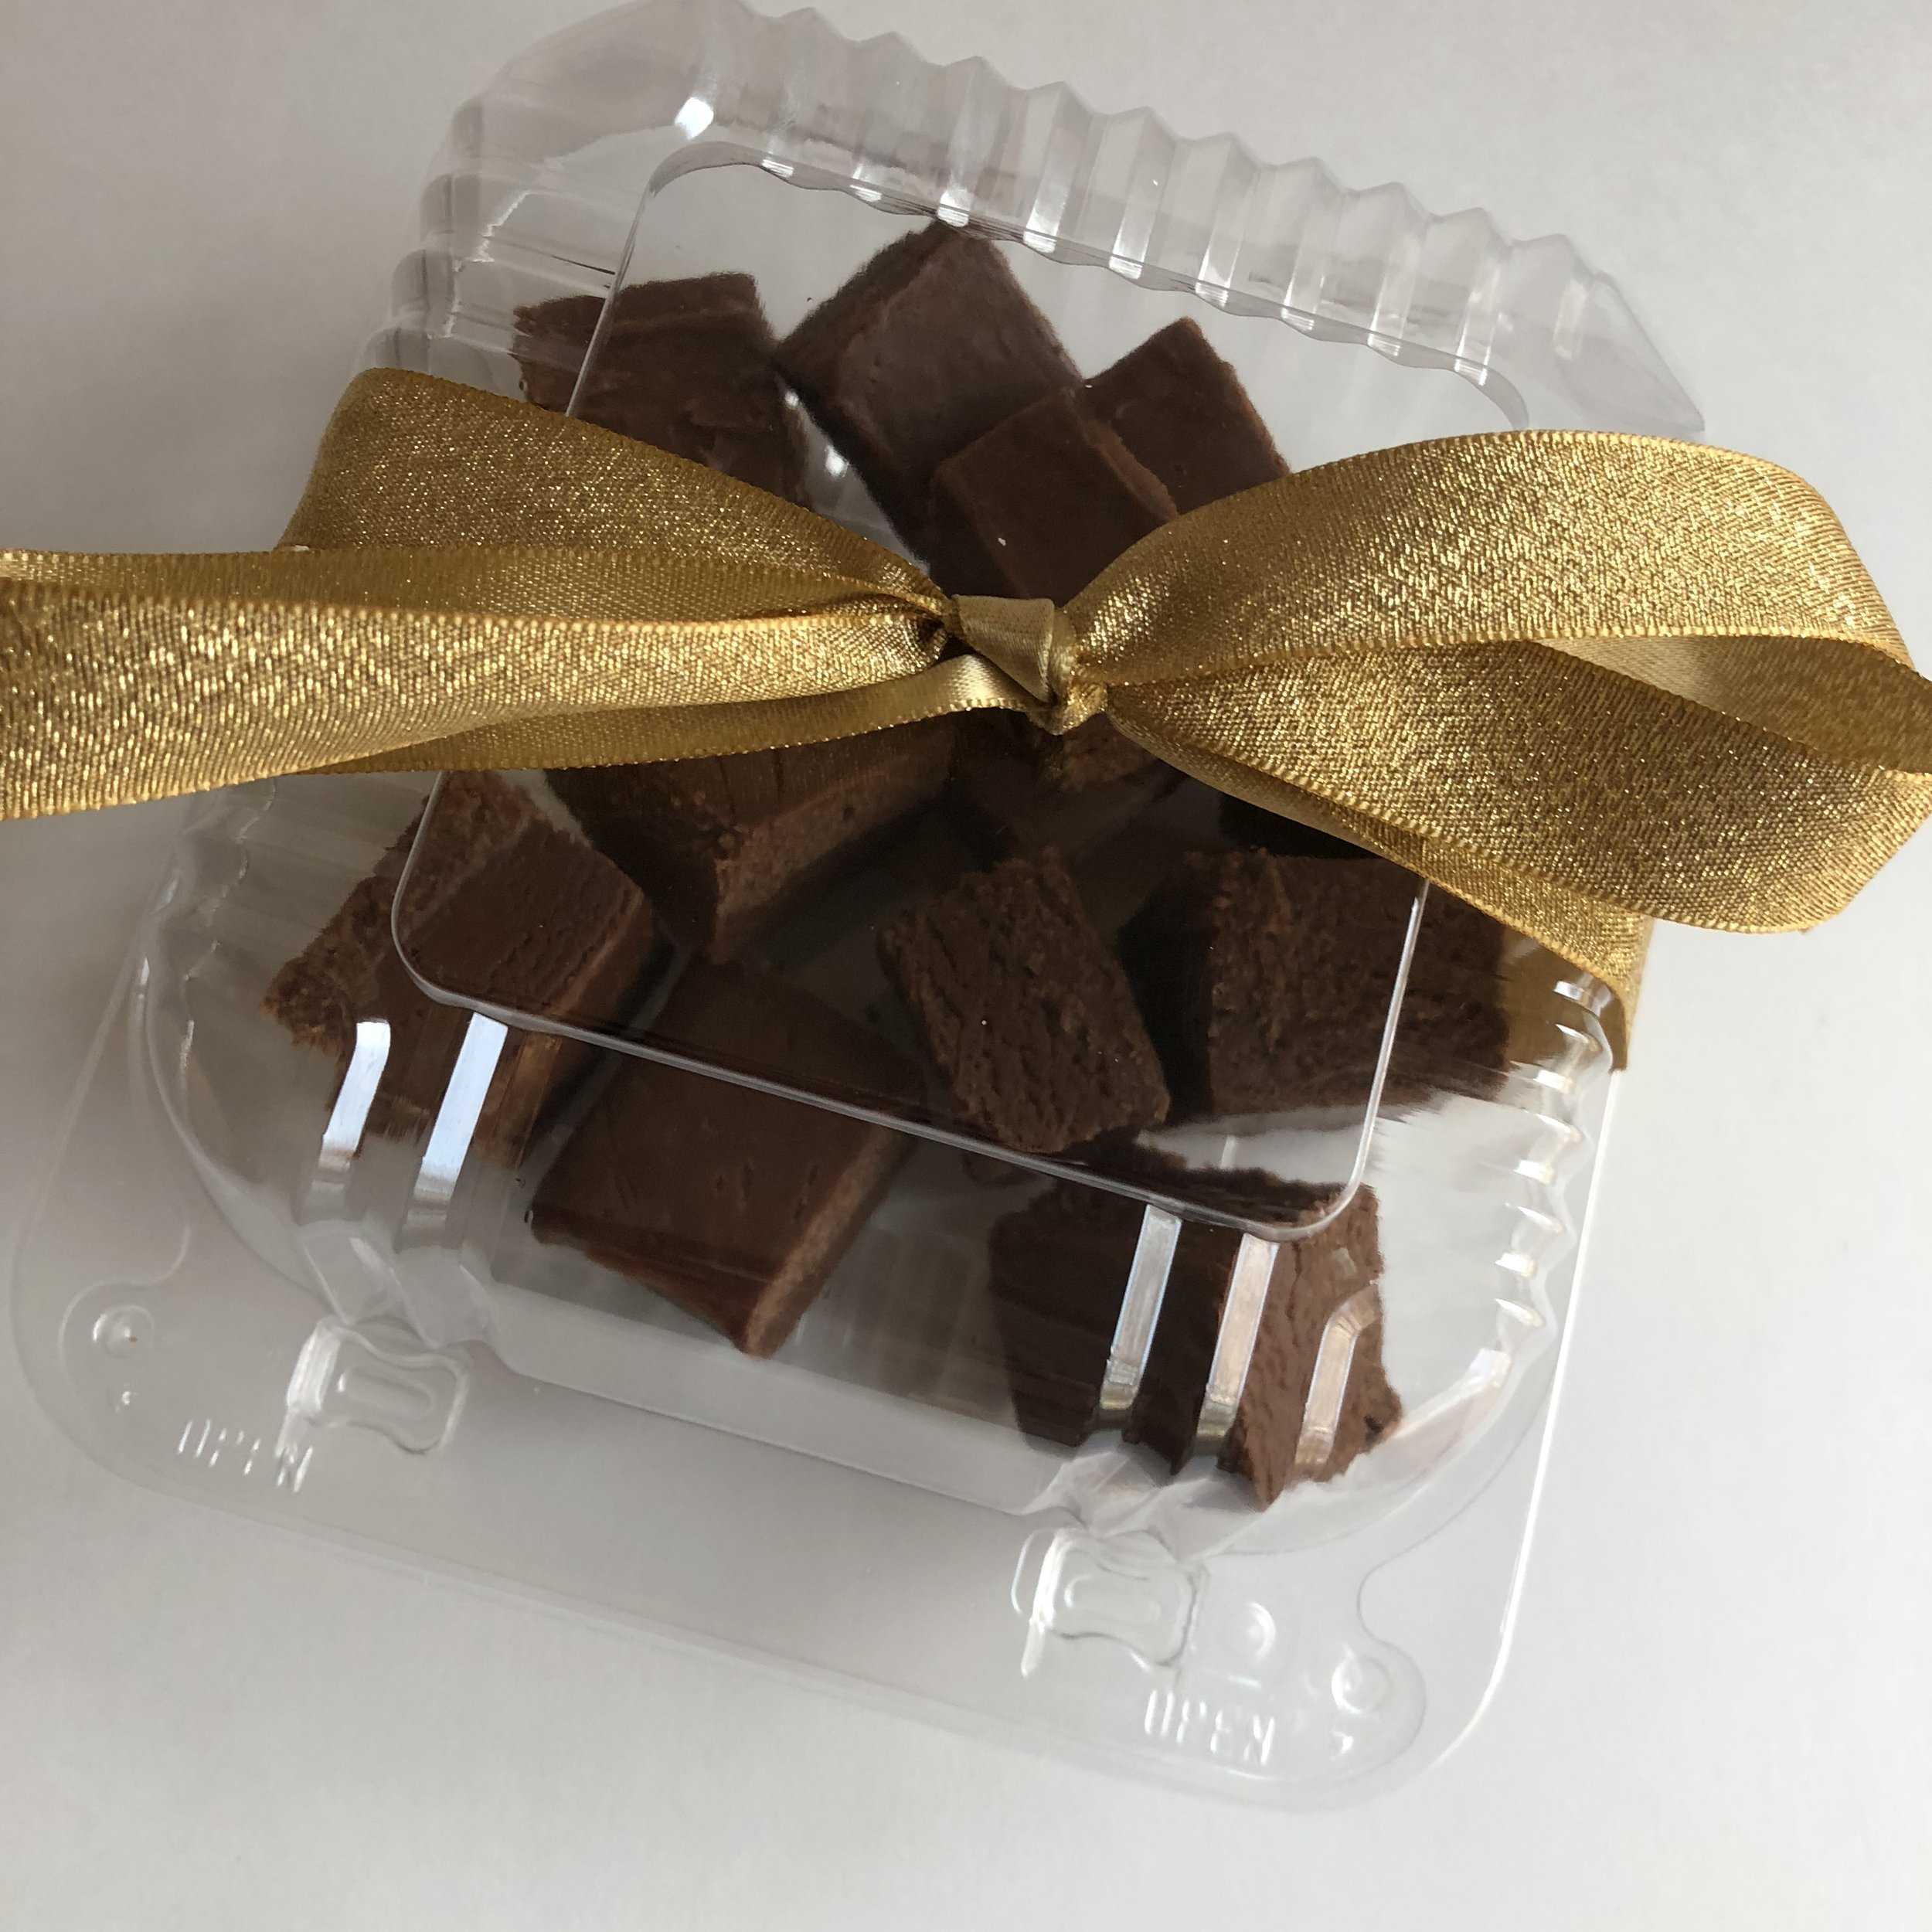 Creamy and rich, our holiday chocolate fudge is simply delicious! Each 1/2 pound wrapped box contains approximately 12 pieces of fudge. Perfect for any chocolate lover!